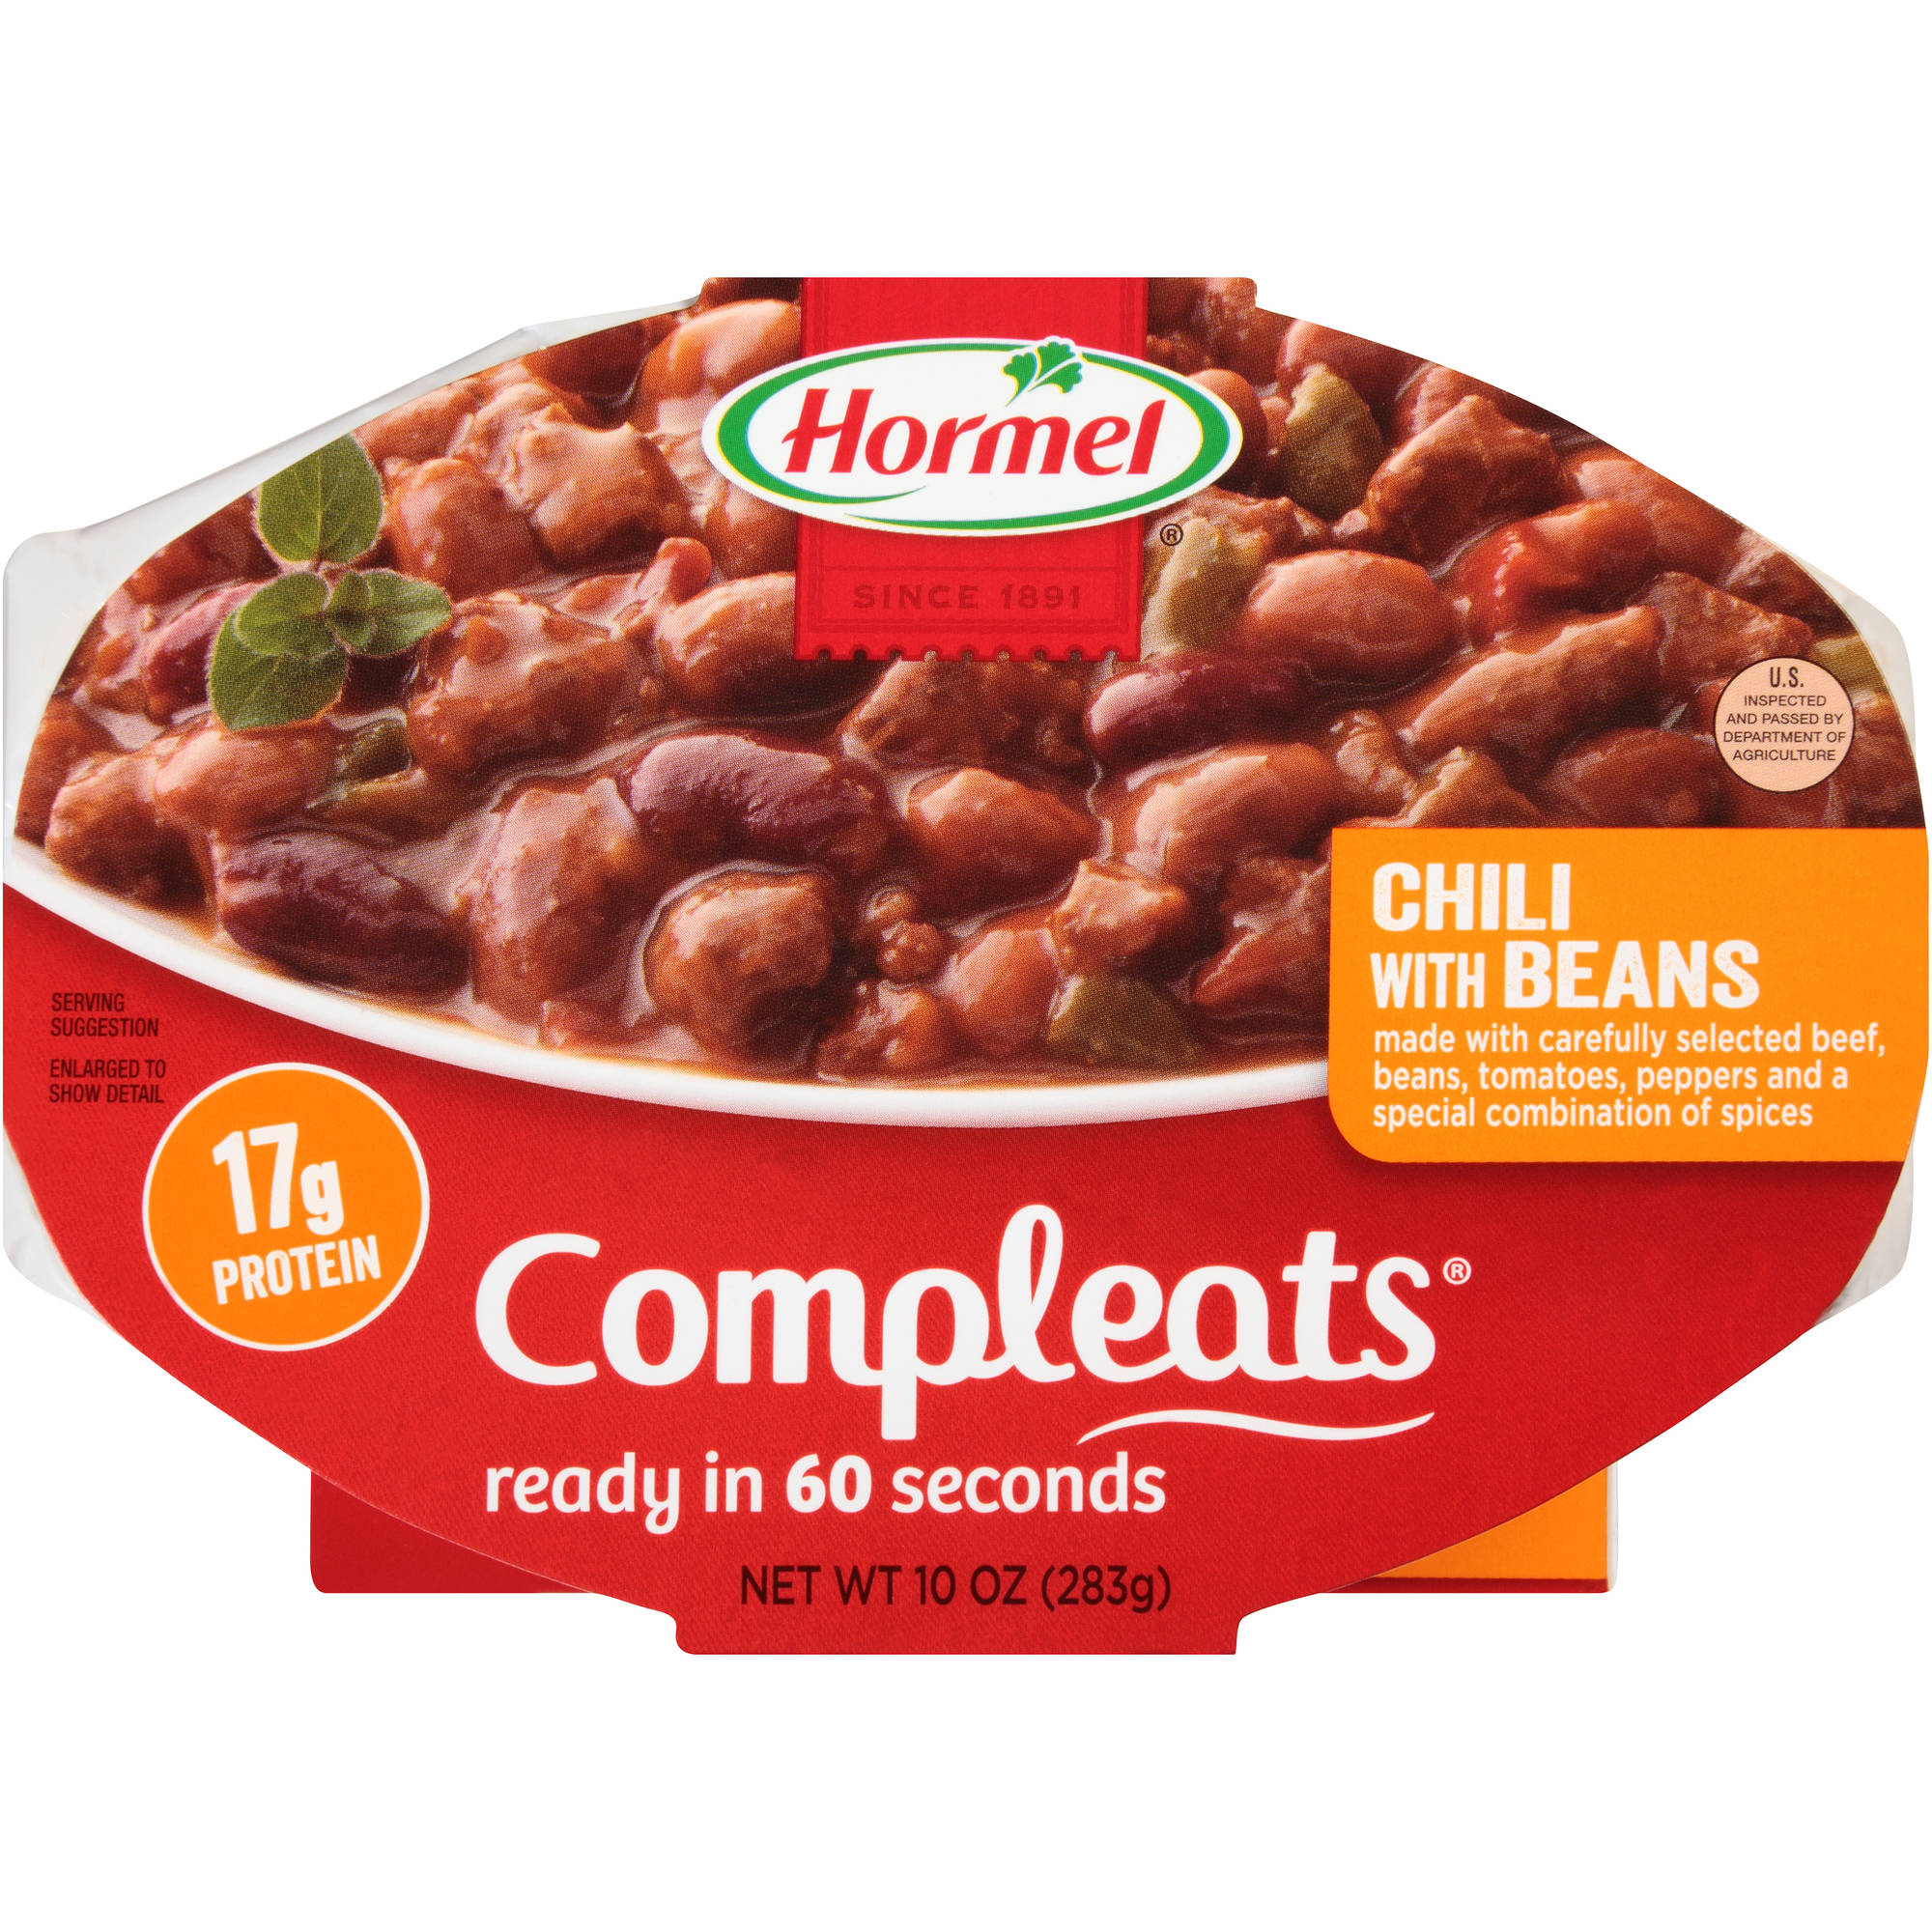 Hormel Compleats Chili with Beans, 10 oz